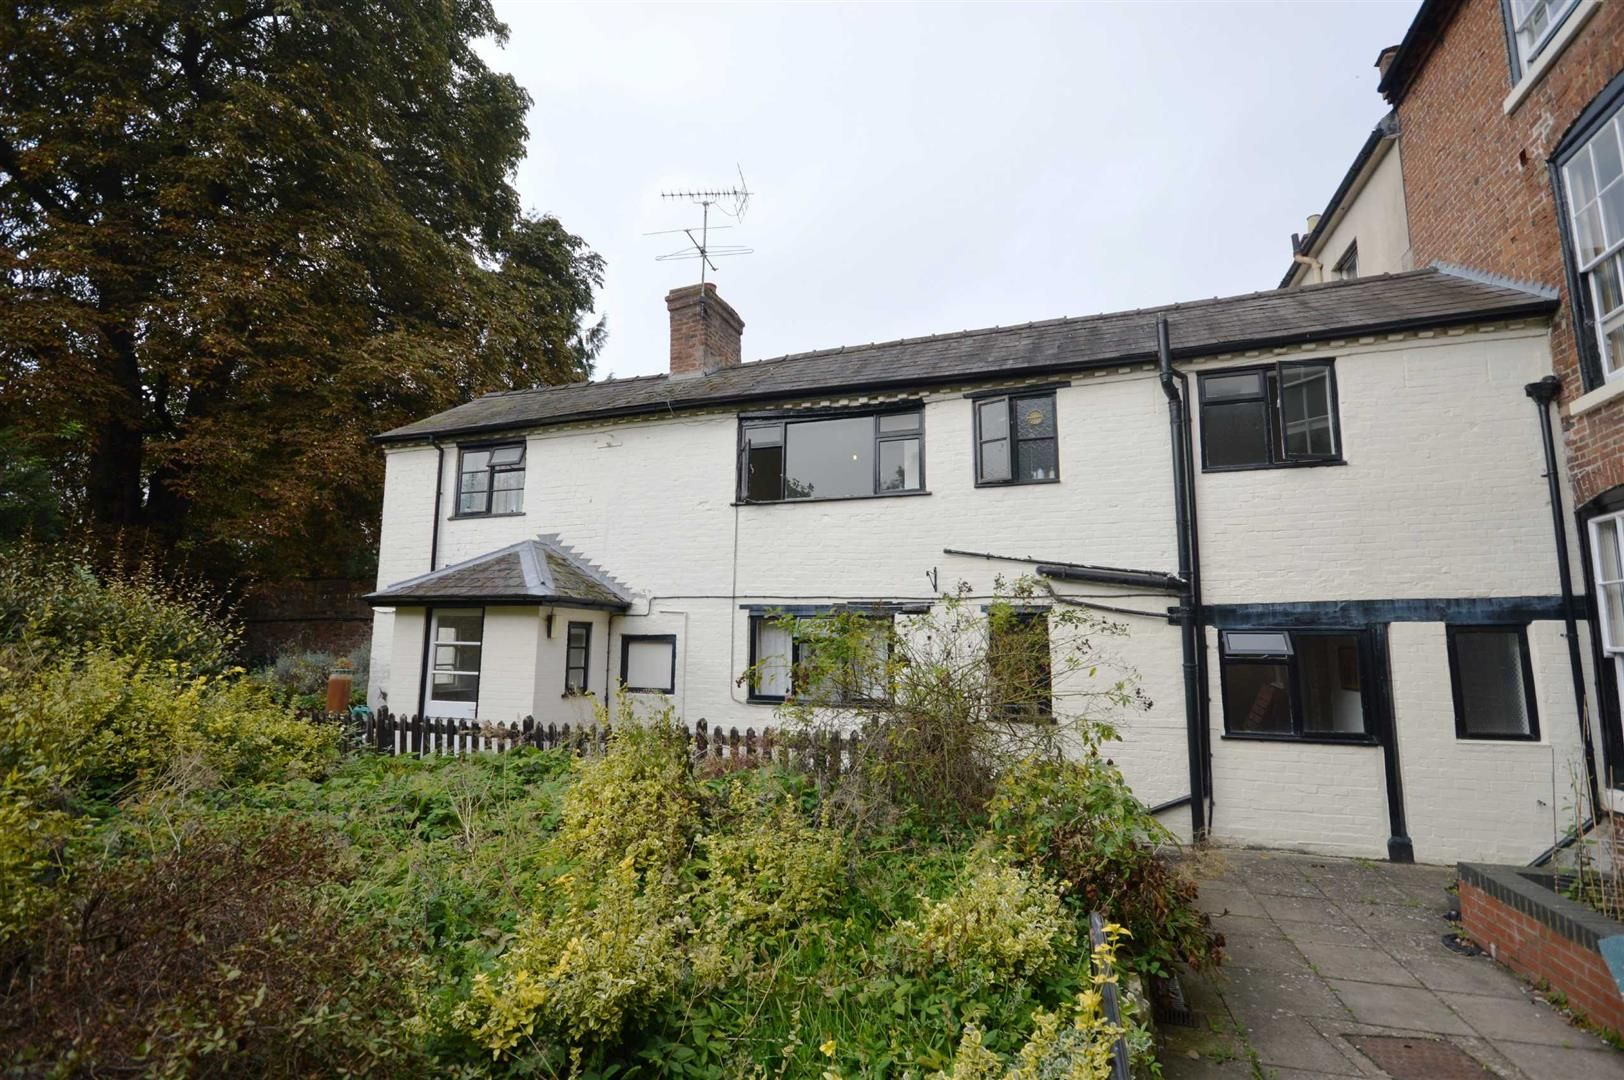 3 bed cottage for sale in Leominster 1